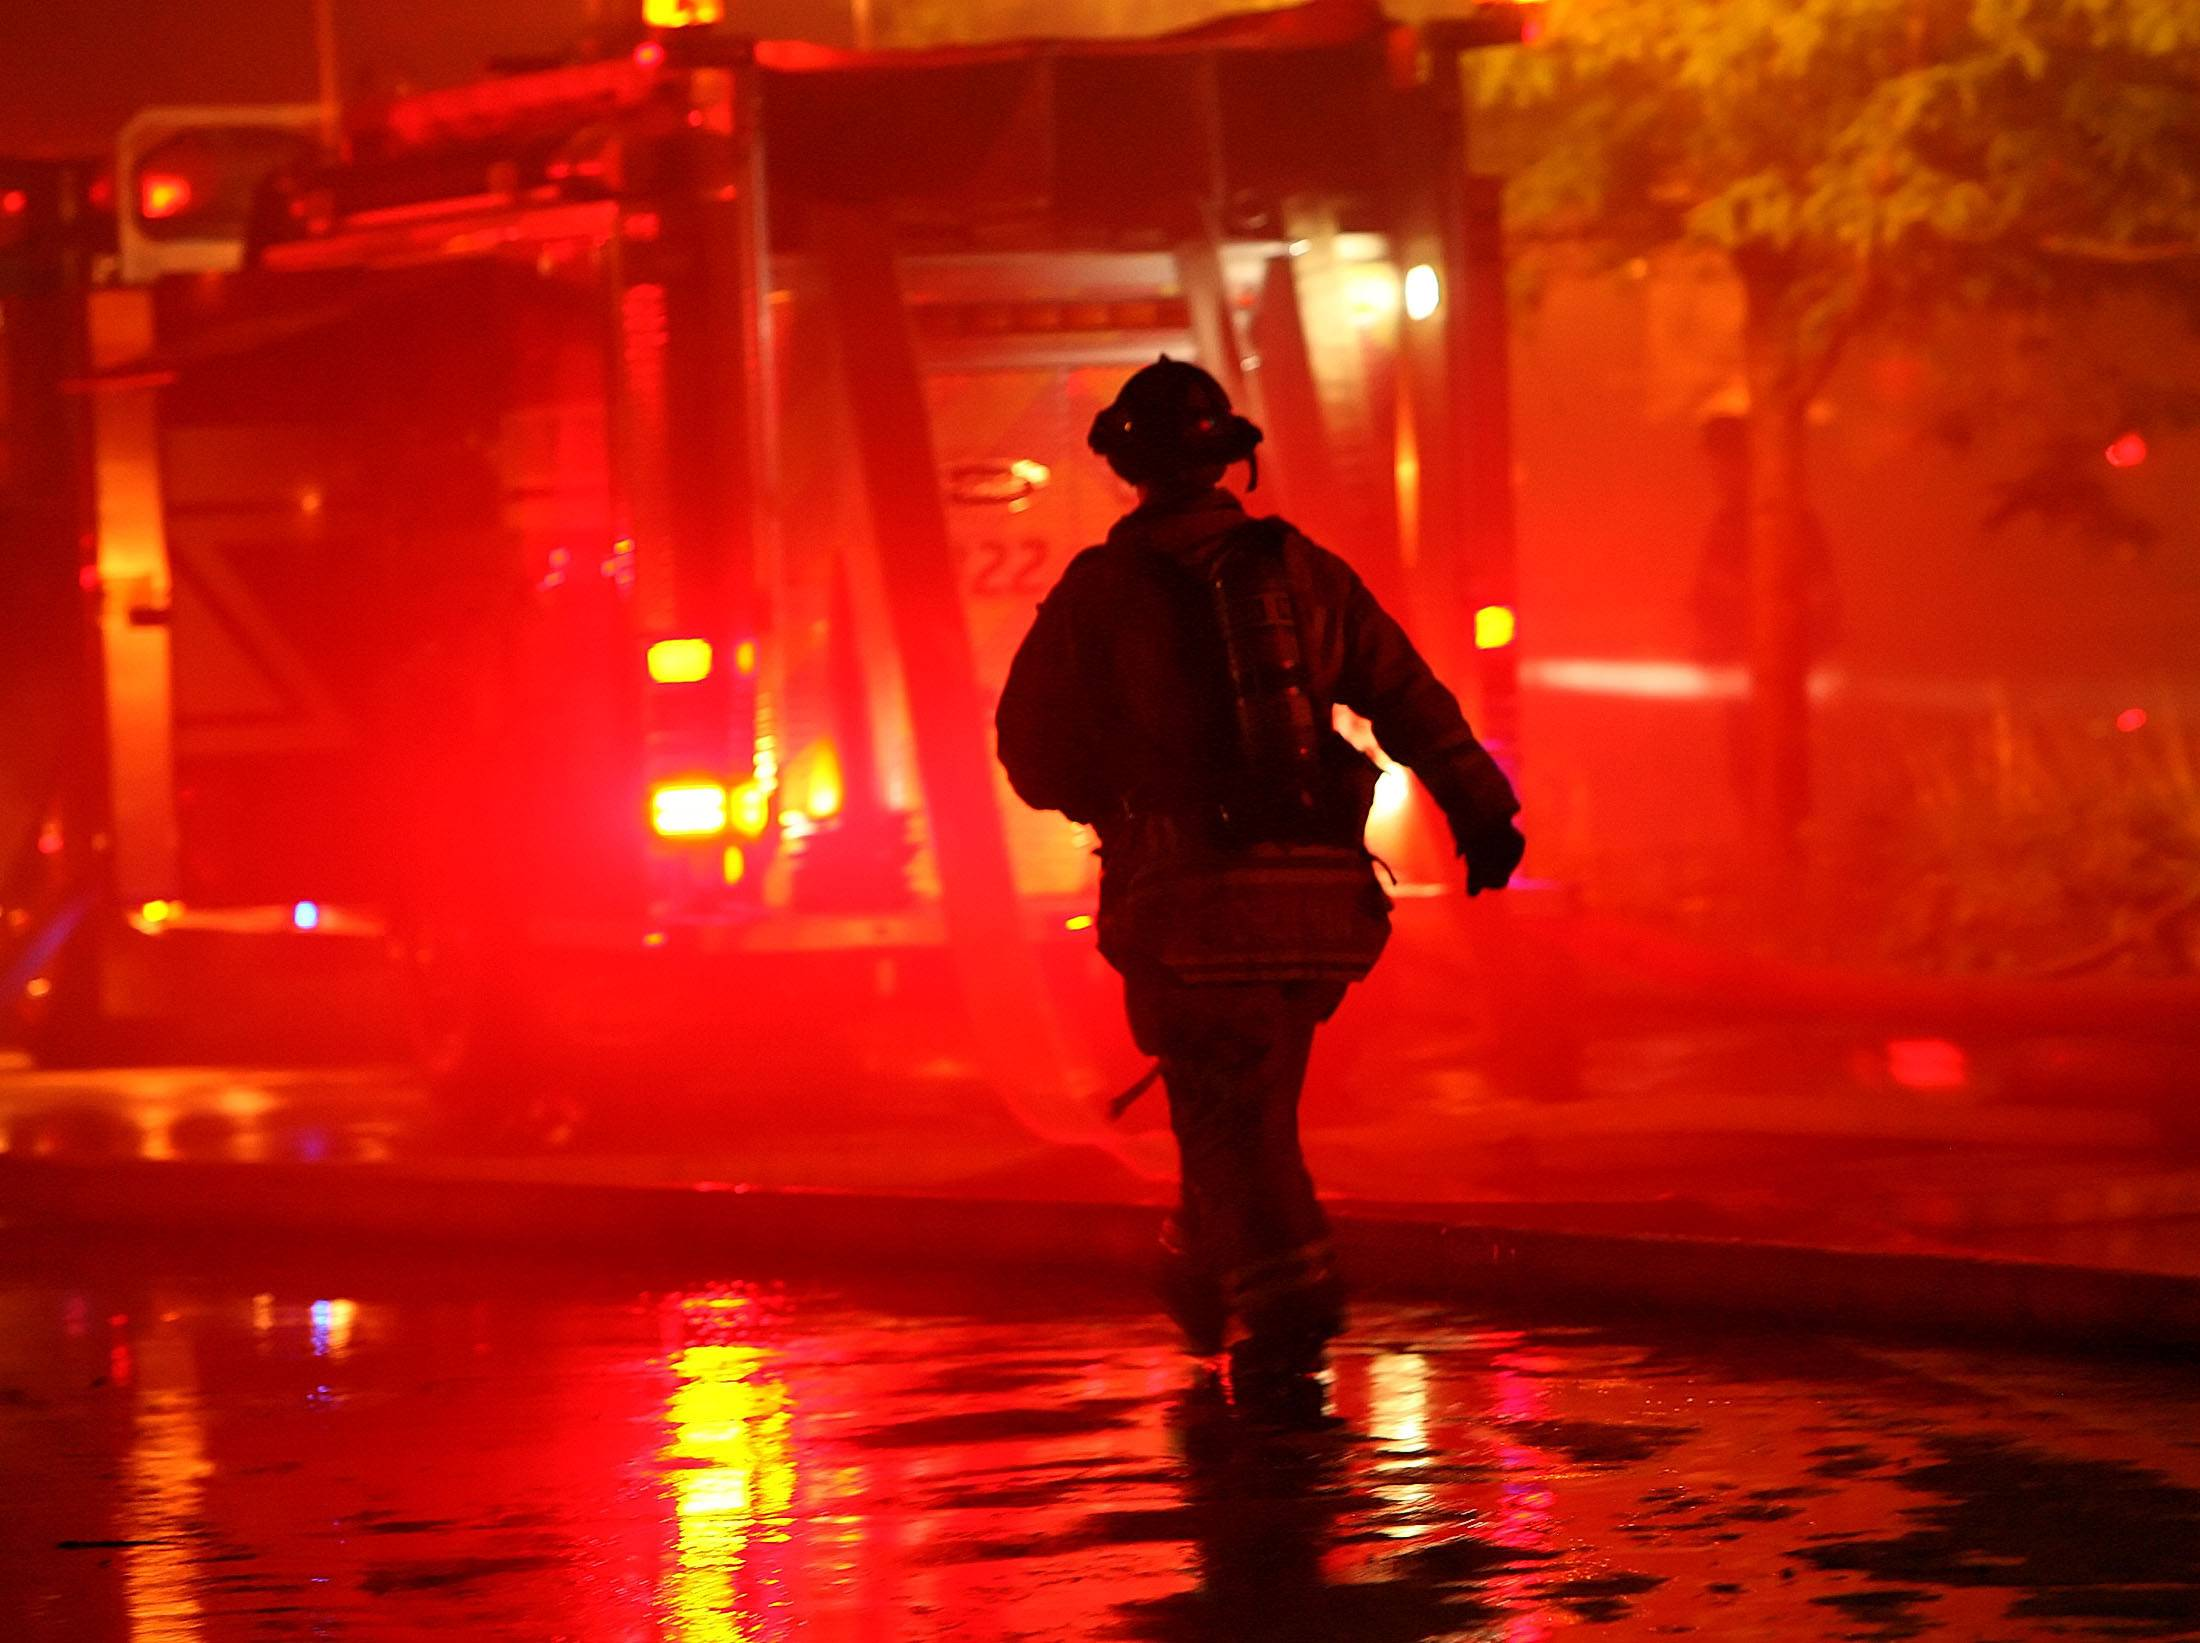 A bill now in the Senate would mandate collective bargaining over minimum fire department staffing levels in Illinois towns other than Chicago.